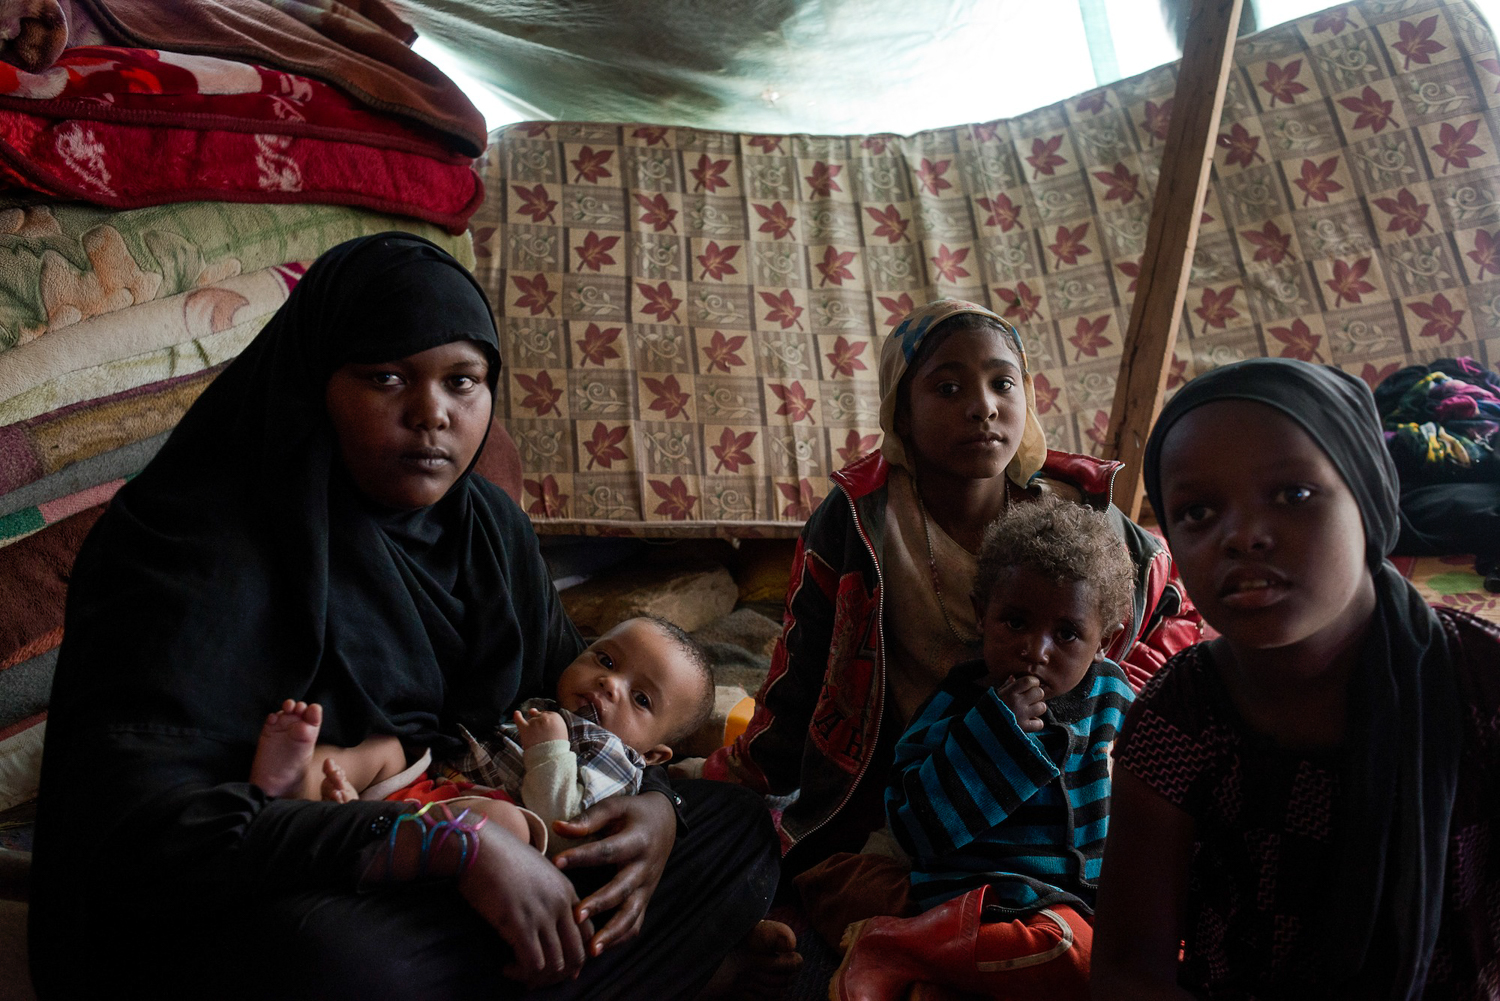 A Yemeni family from the Muhamashin community sit in their makeshift tent in an unofficial, displaced persons camp in Khamer, Yemen. [Alex Potter/Al Jazeera]